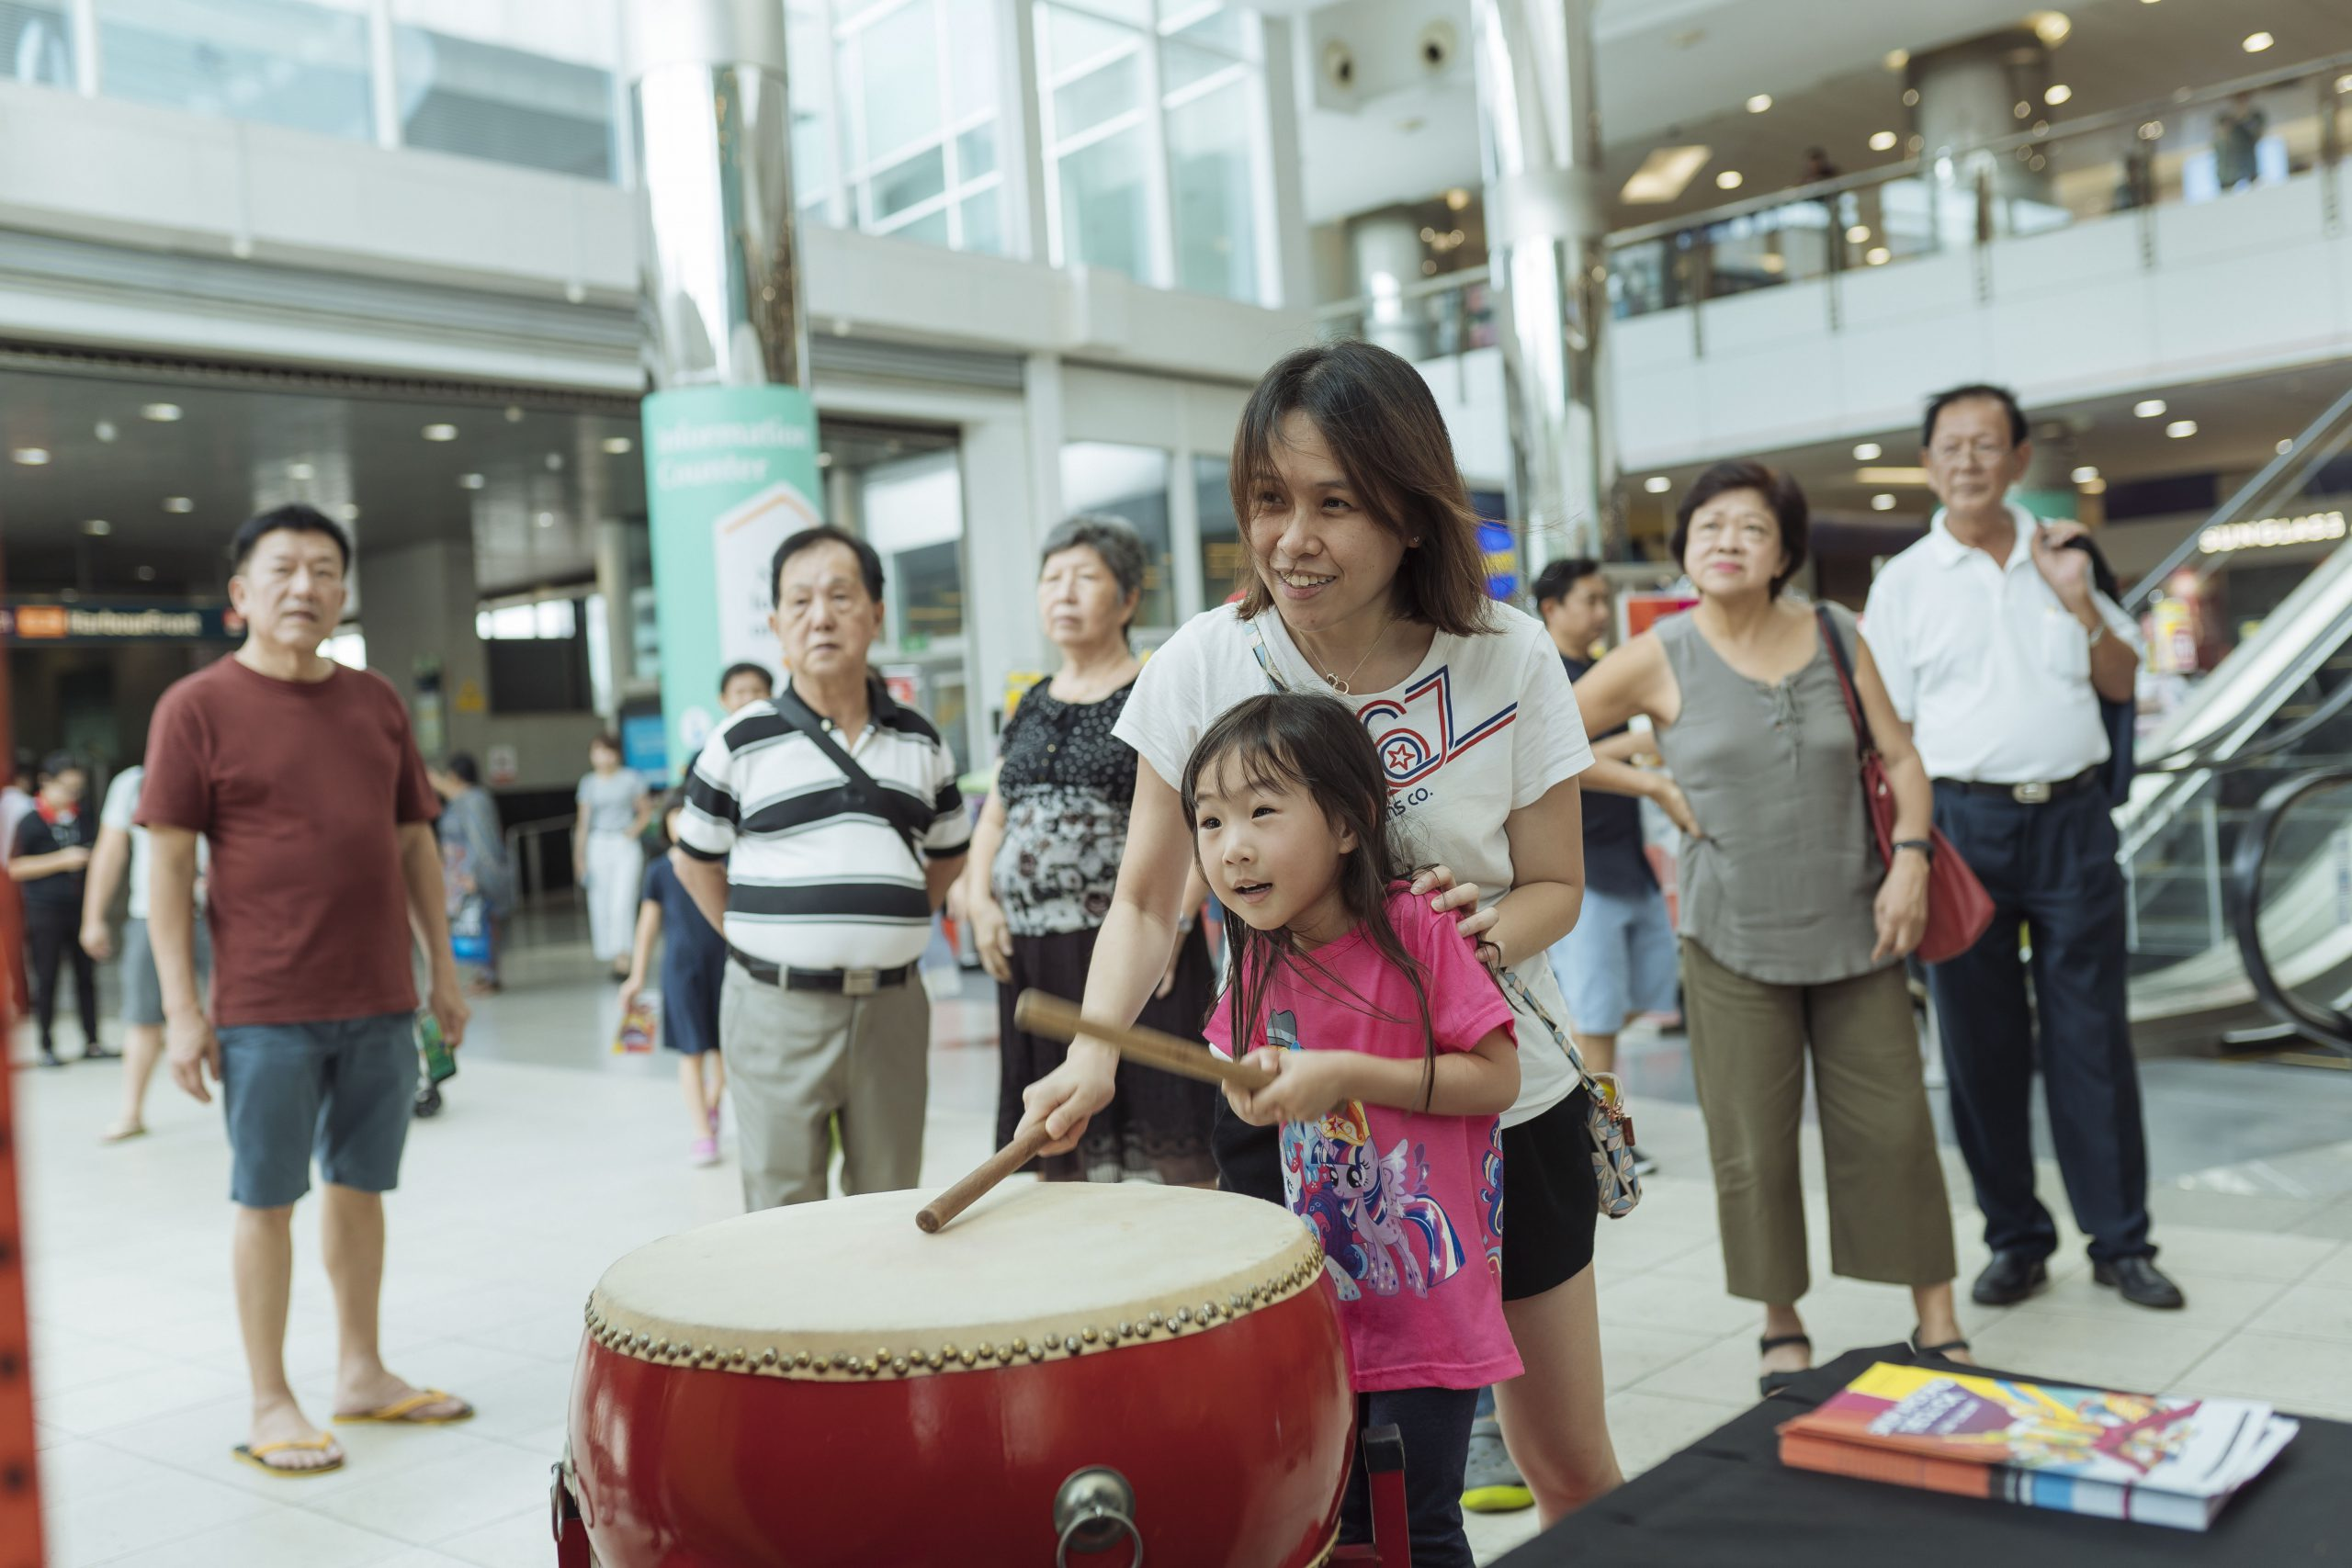 A little girl and her mother team up to play the HBFC Ramen Chomp Digital Drum Game